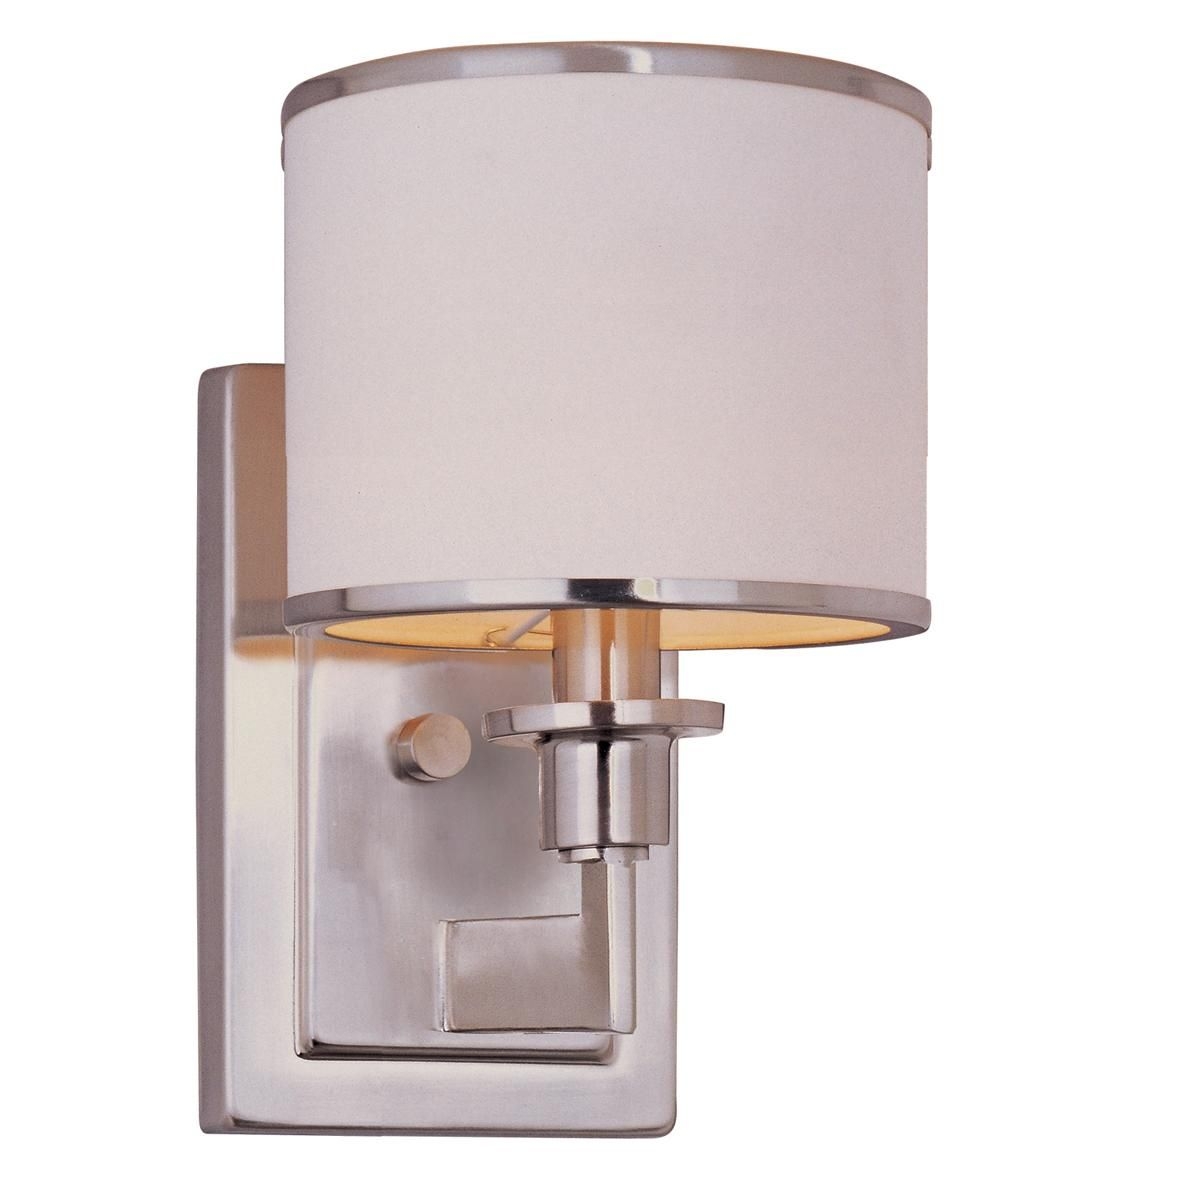 sconce white glass wall kovacs finish item contemporary light lighting zoom gold modern in george with sconces honey